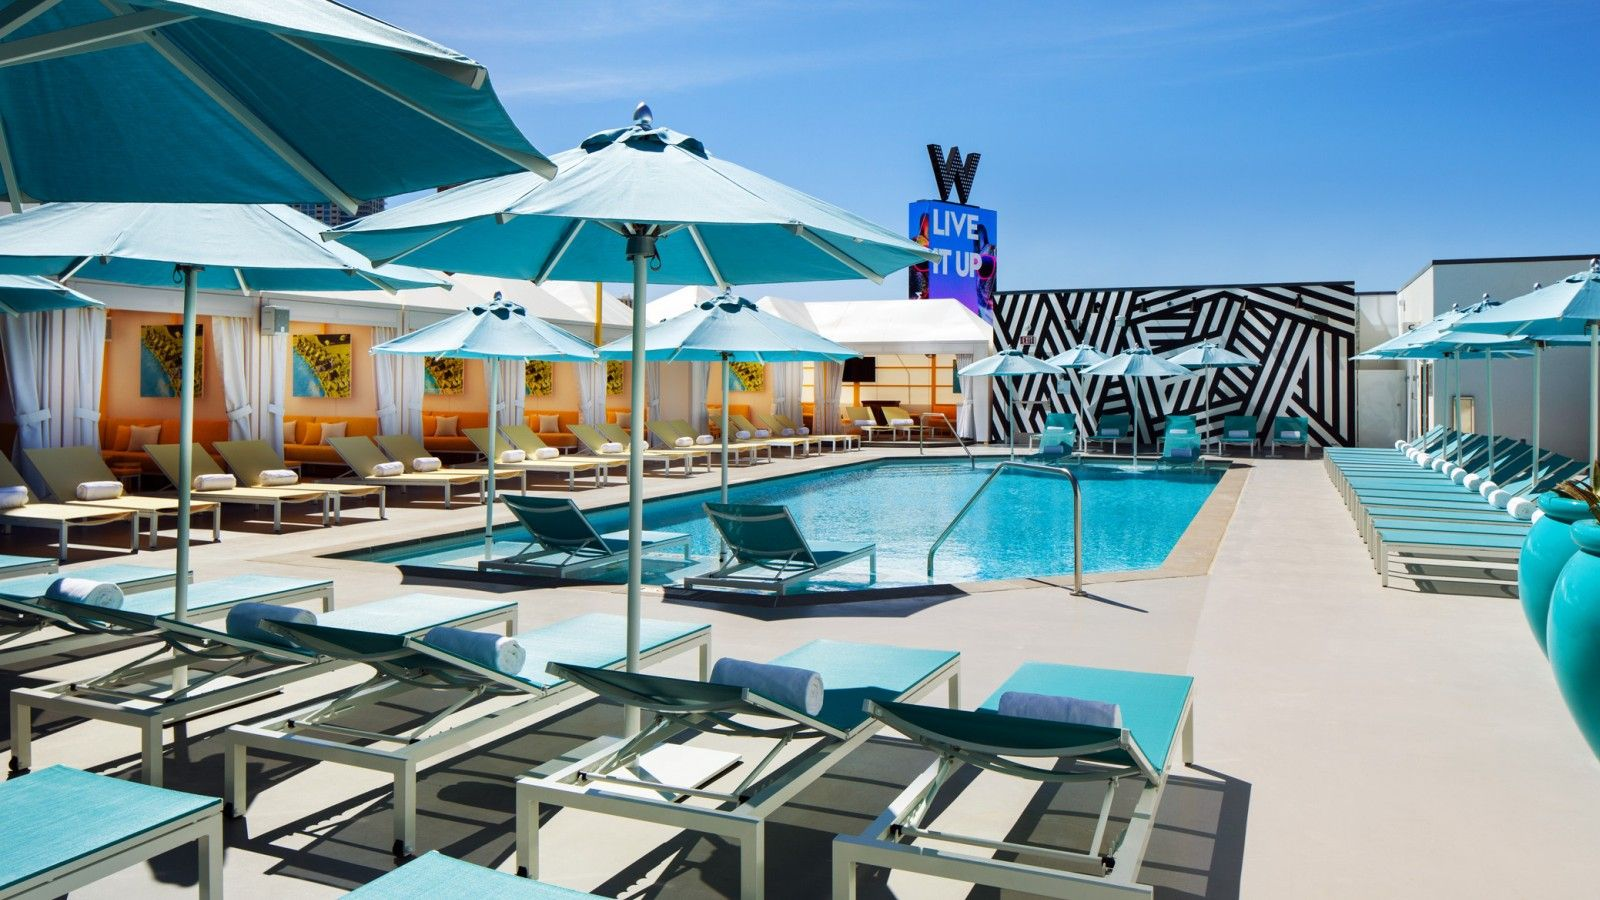 Wet Deck Pool - Outdoor Social Events in Las Vegas